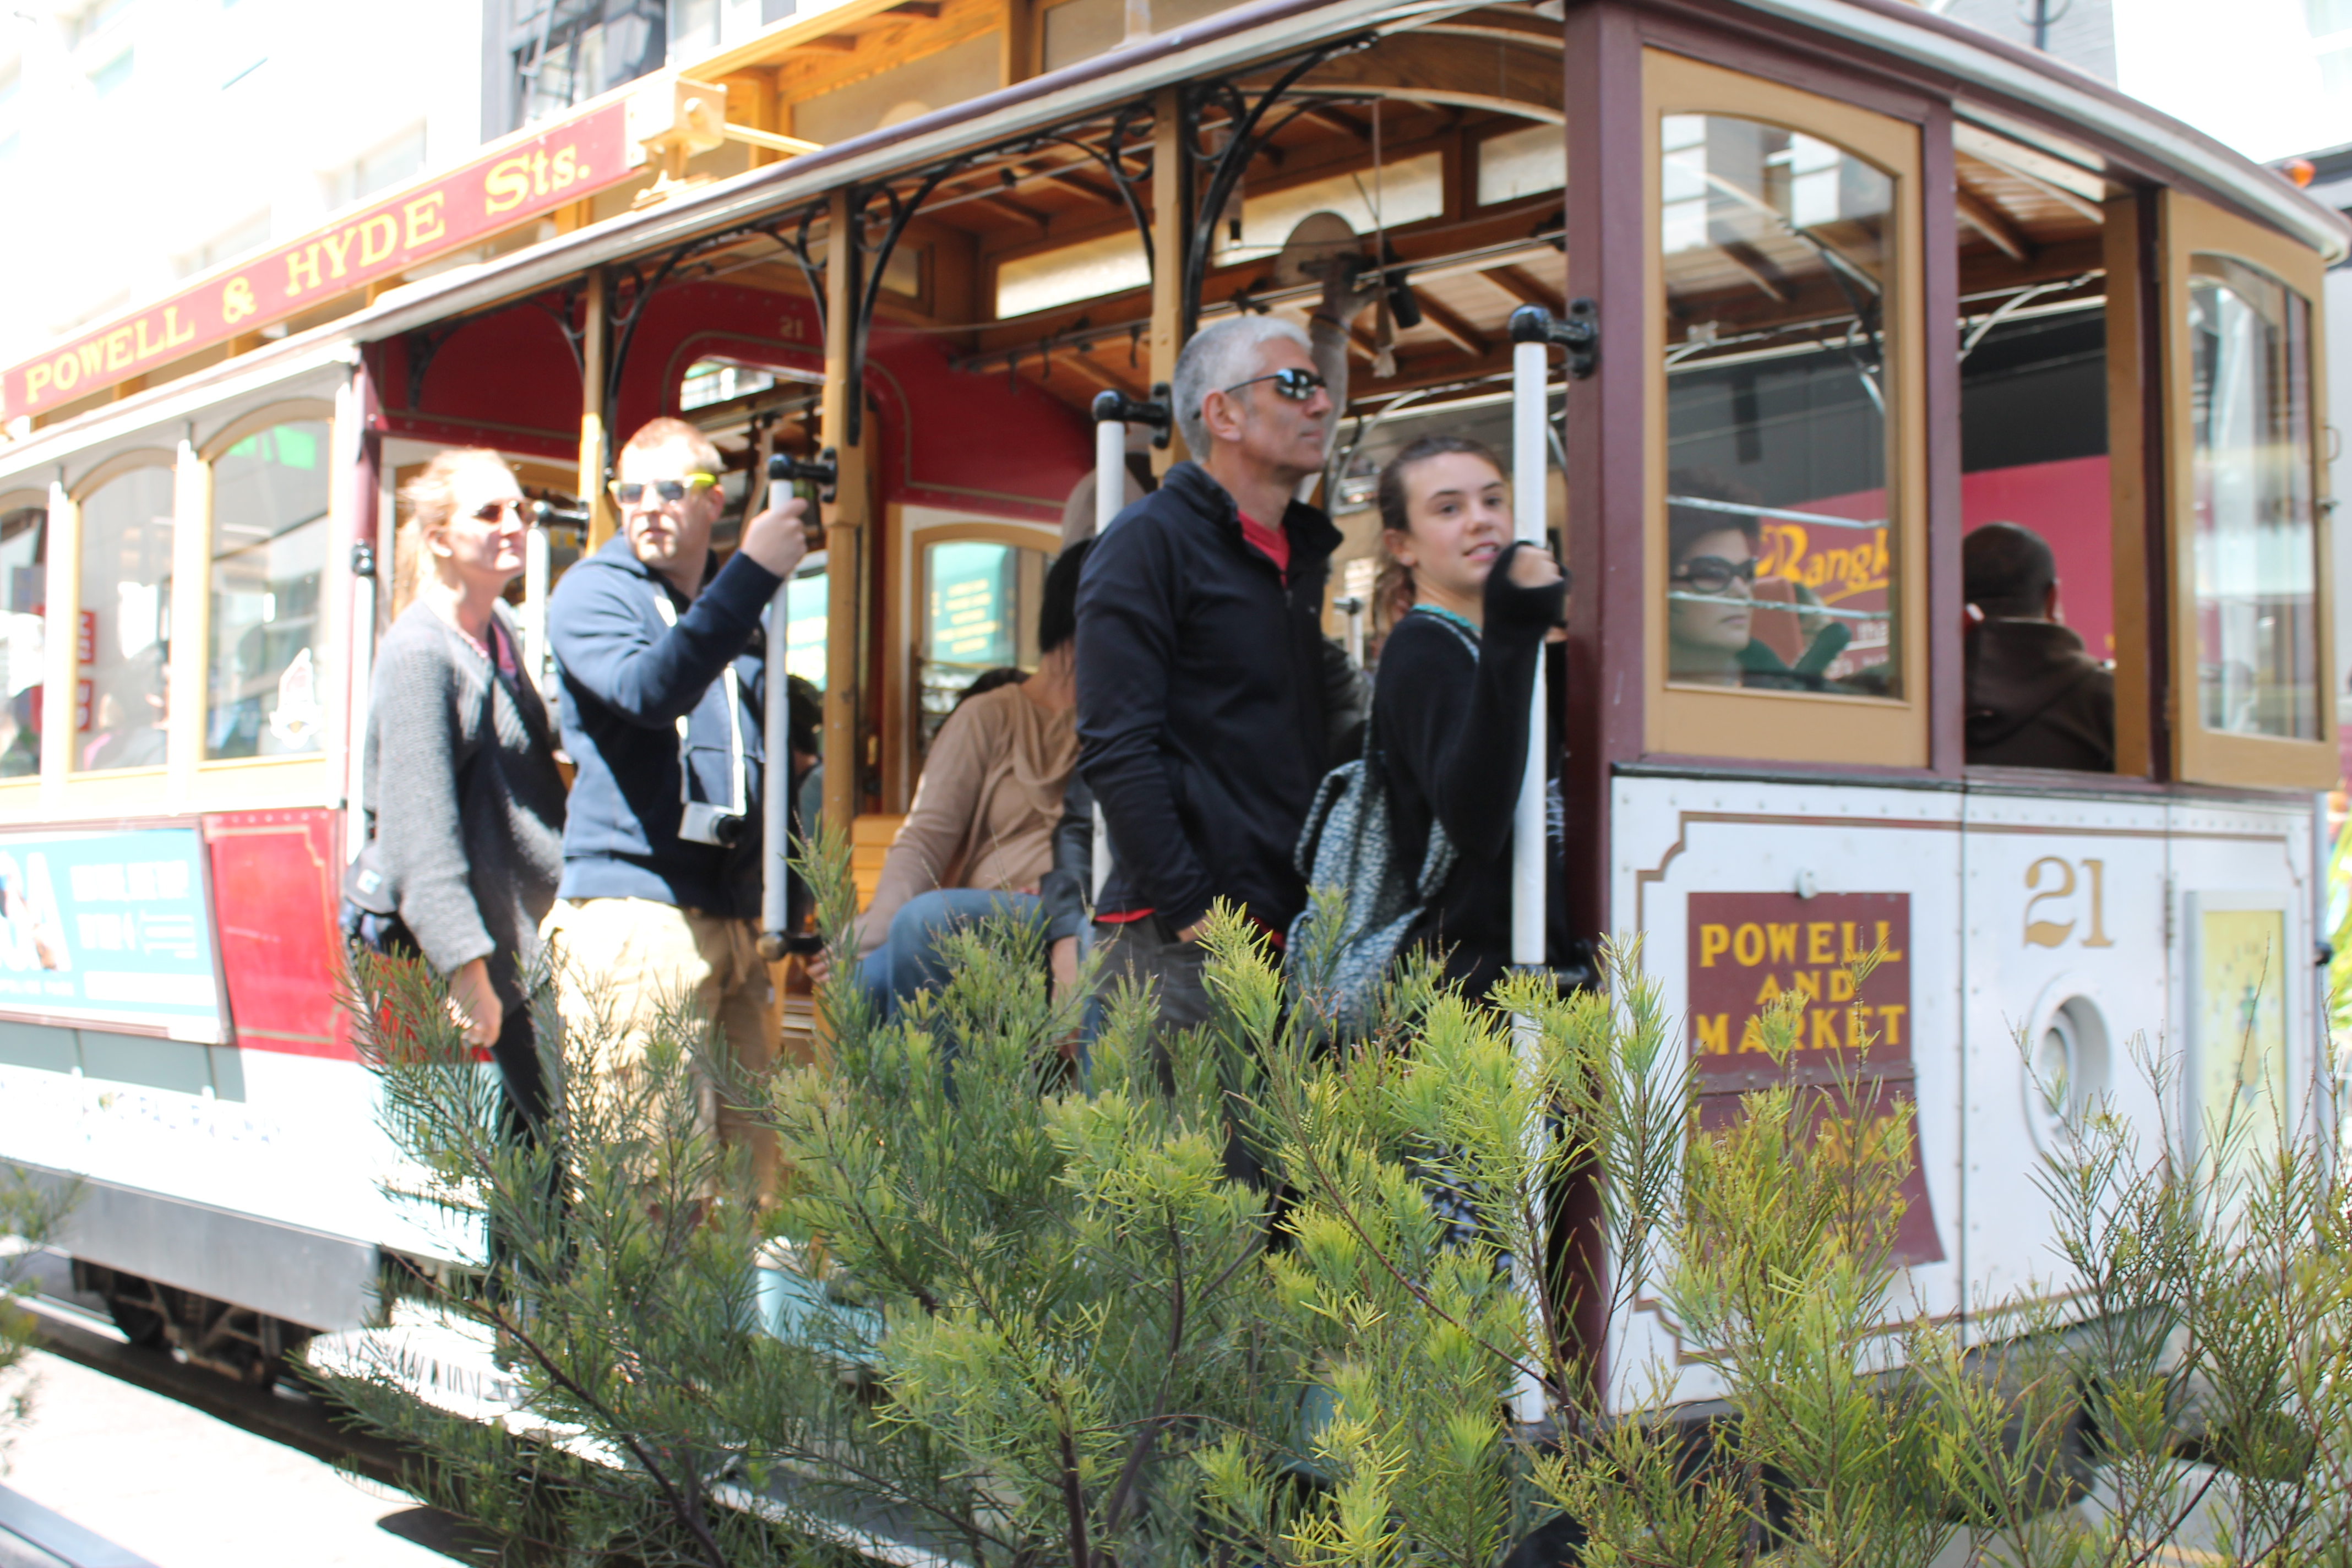 Tourists riding the cable car in Union Square in San Francisco. (Photo: Super G)